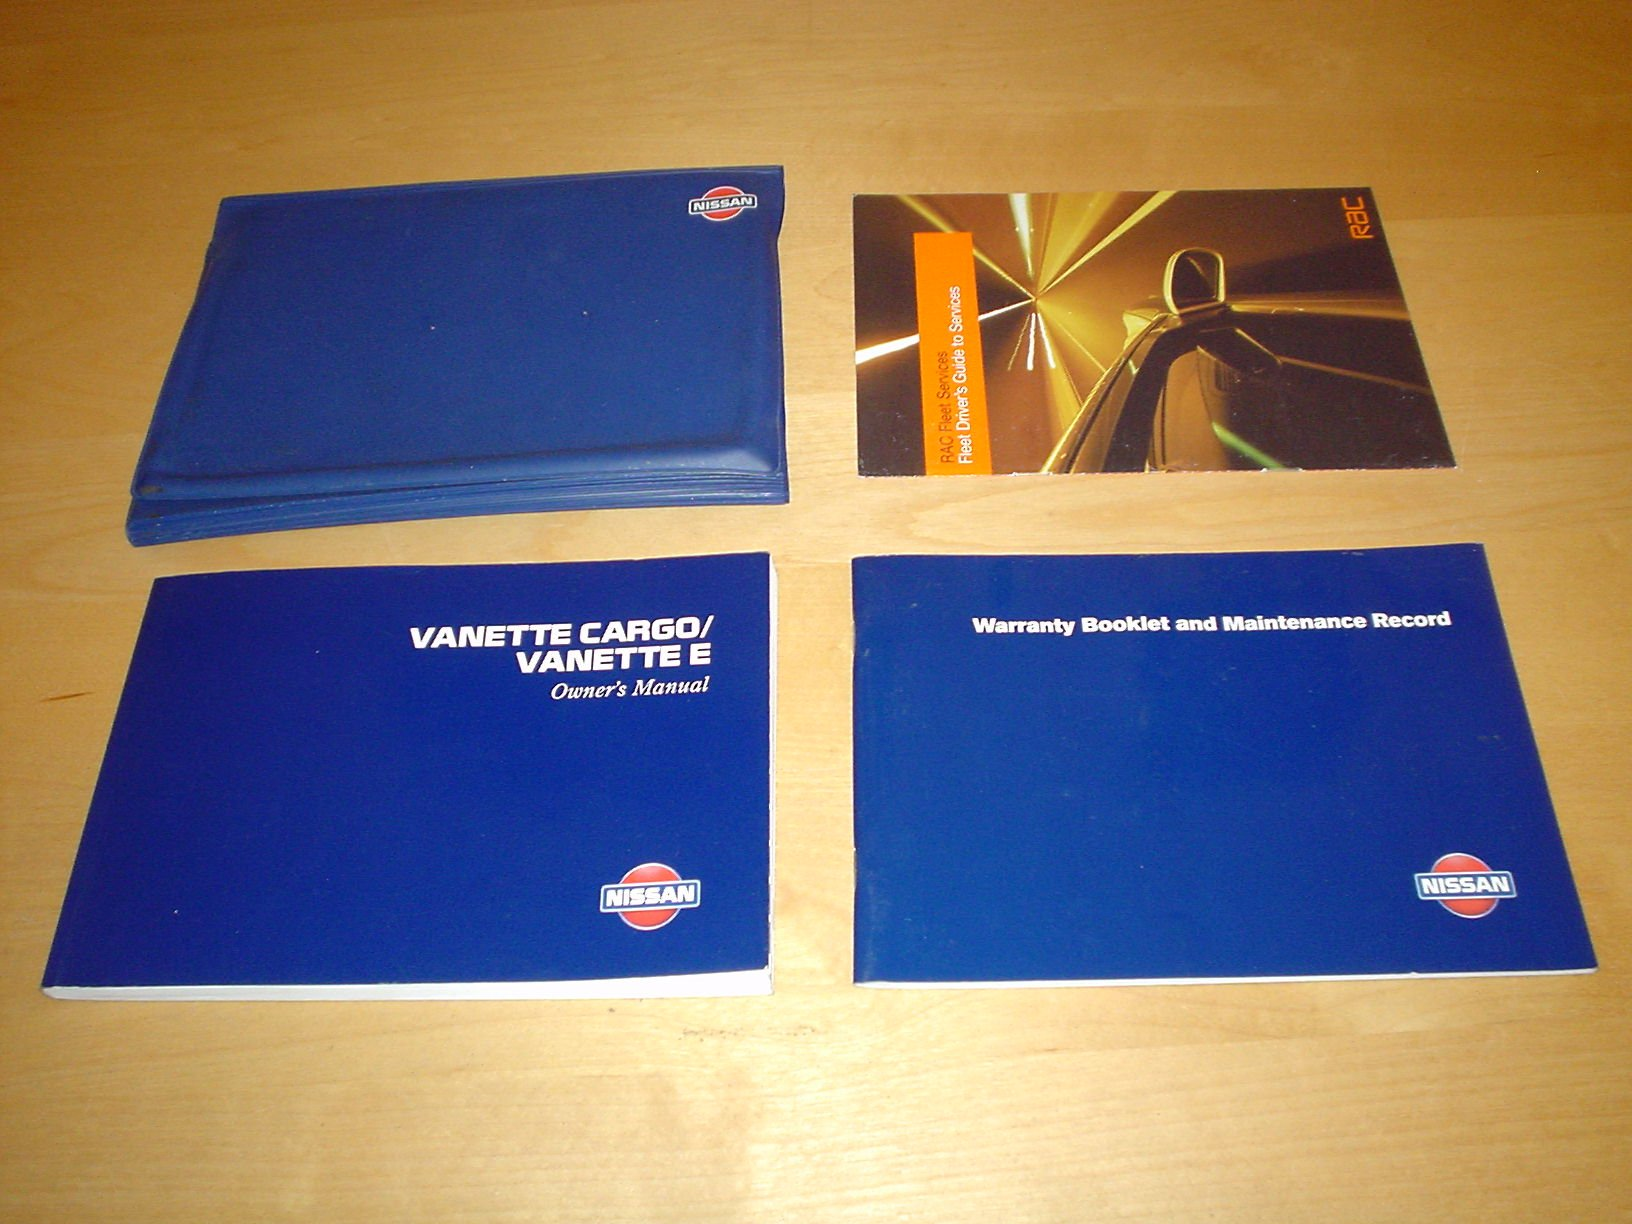 NISSAN VANETTE CARGO E OWNERS MANUAL HANDBOOK 1.6 LITRE PETROL ENGINE 2.3 LITRE DIESEL ENGINE - OWNERS HAND BOOK MANUAL: Amazon.es: NISSAN: Libros